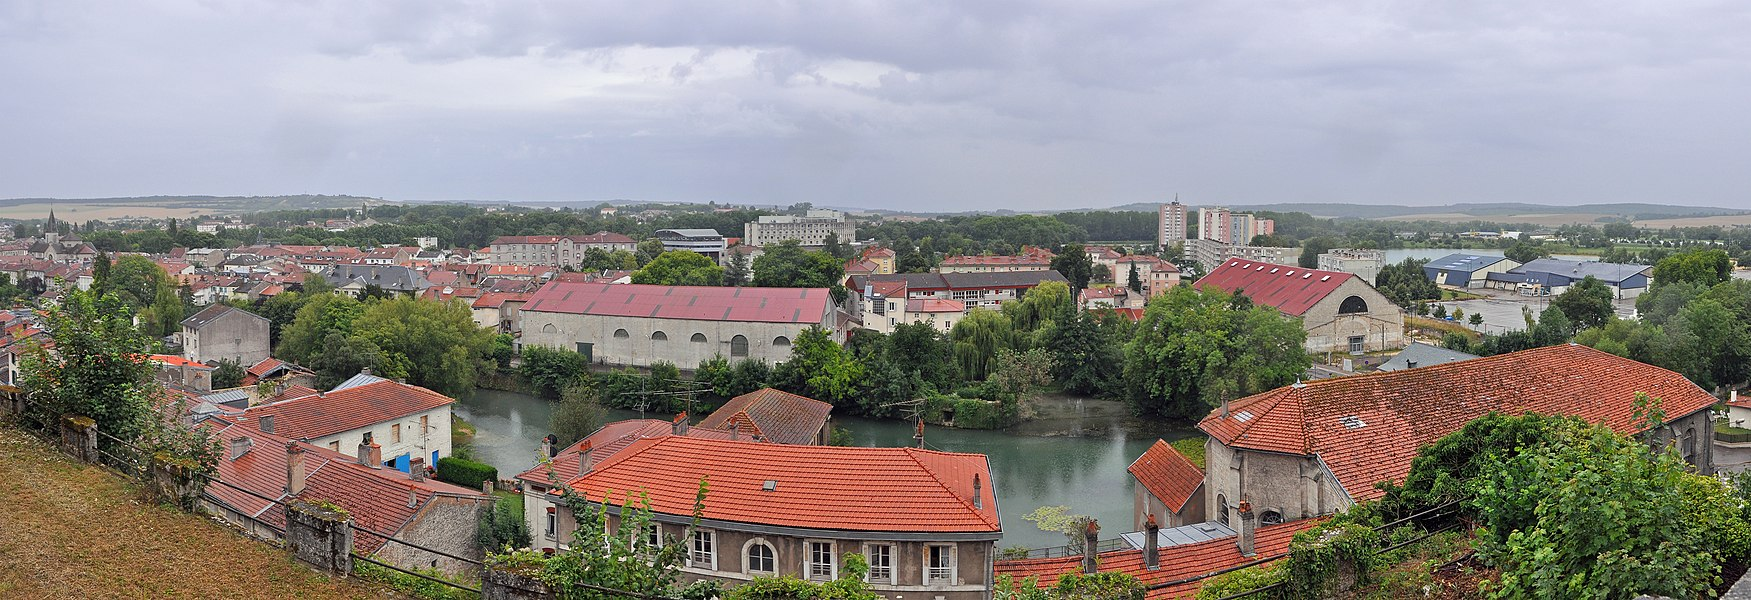 Verdun (France): panorama of the southern part of the town, on a rainy day